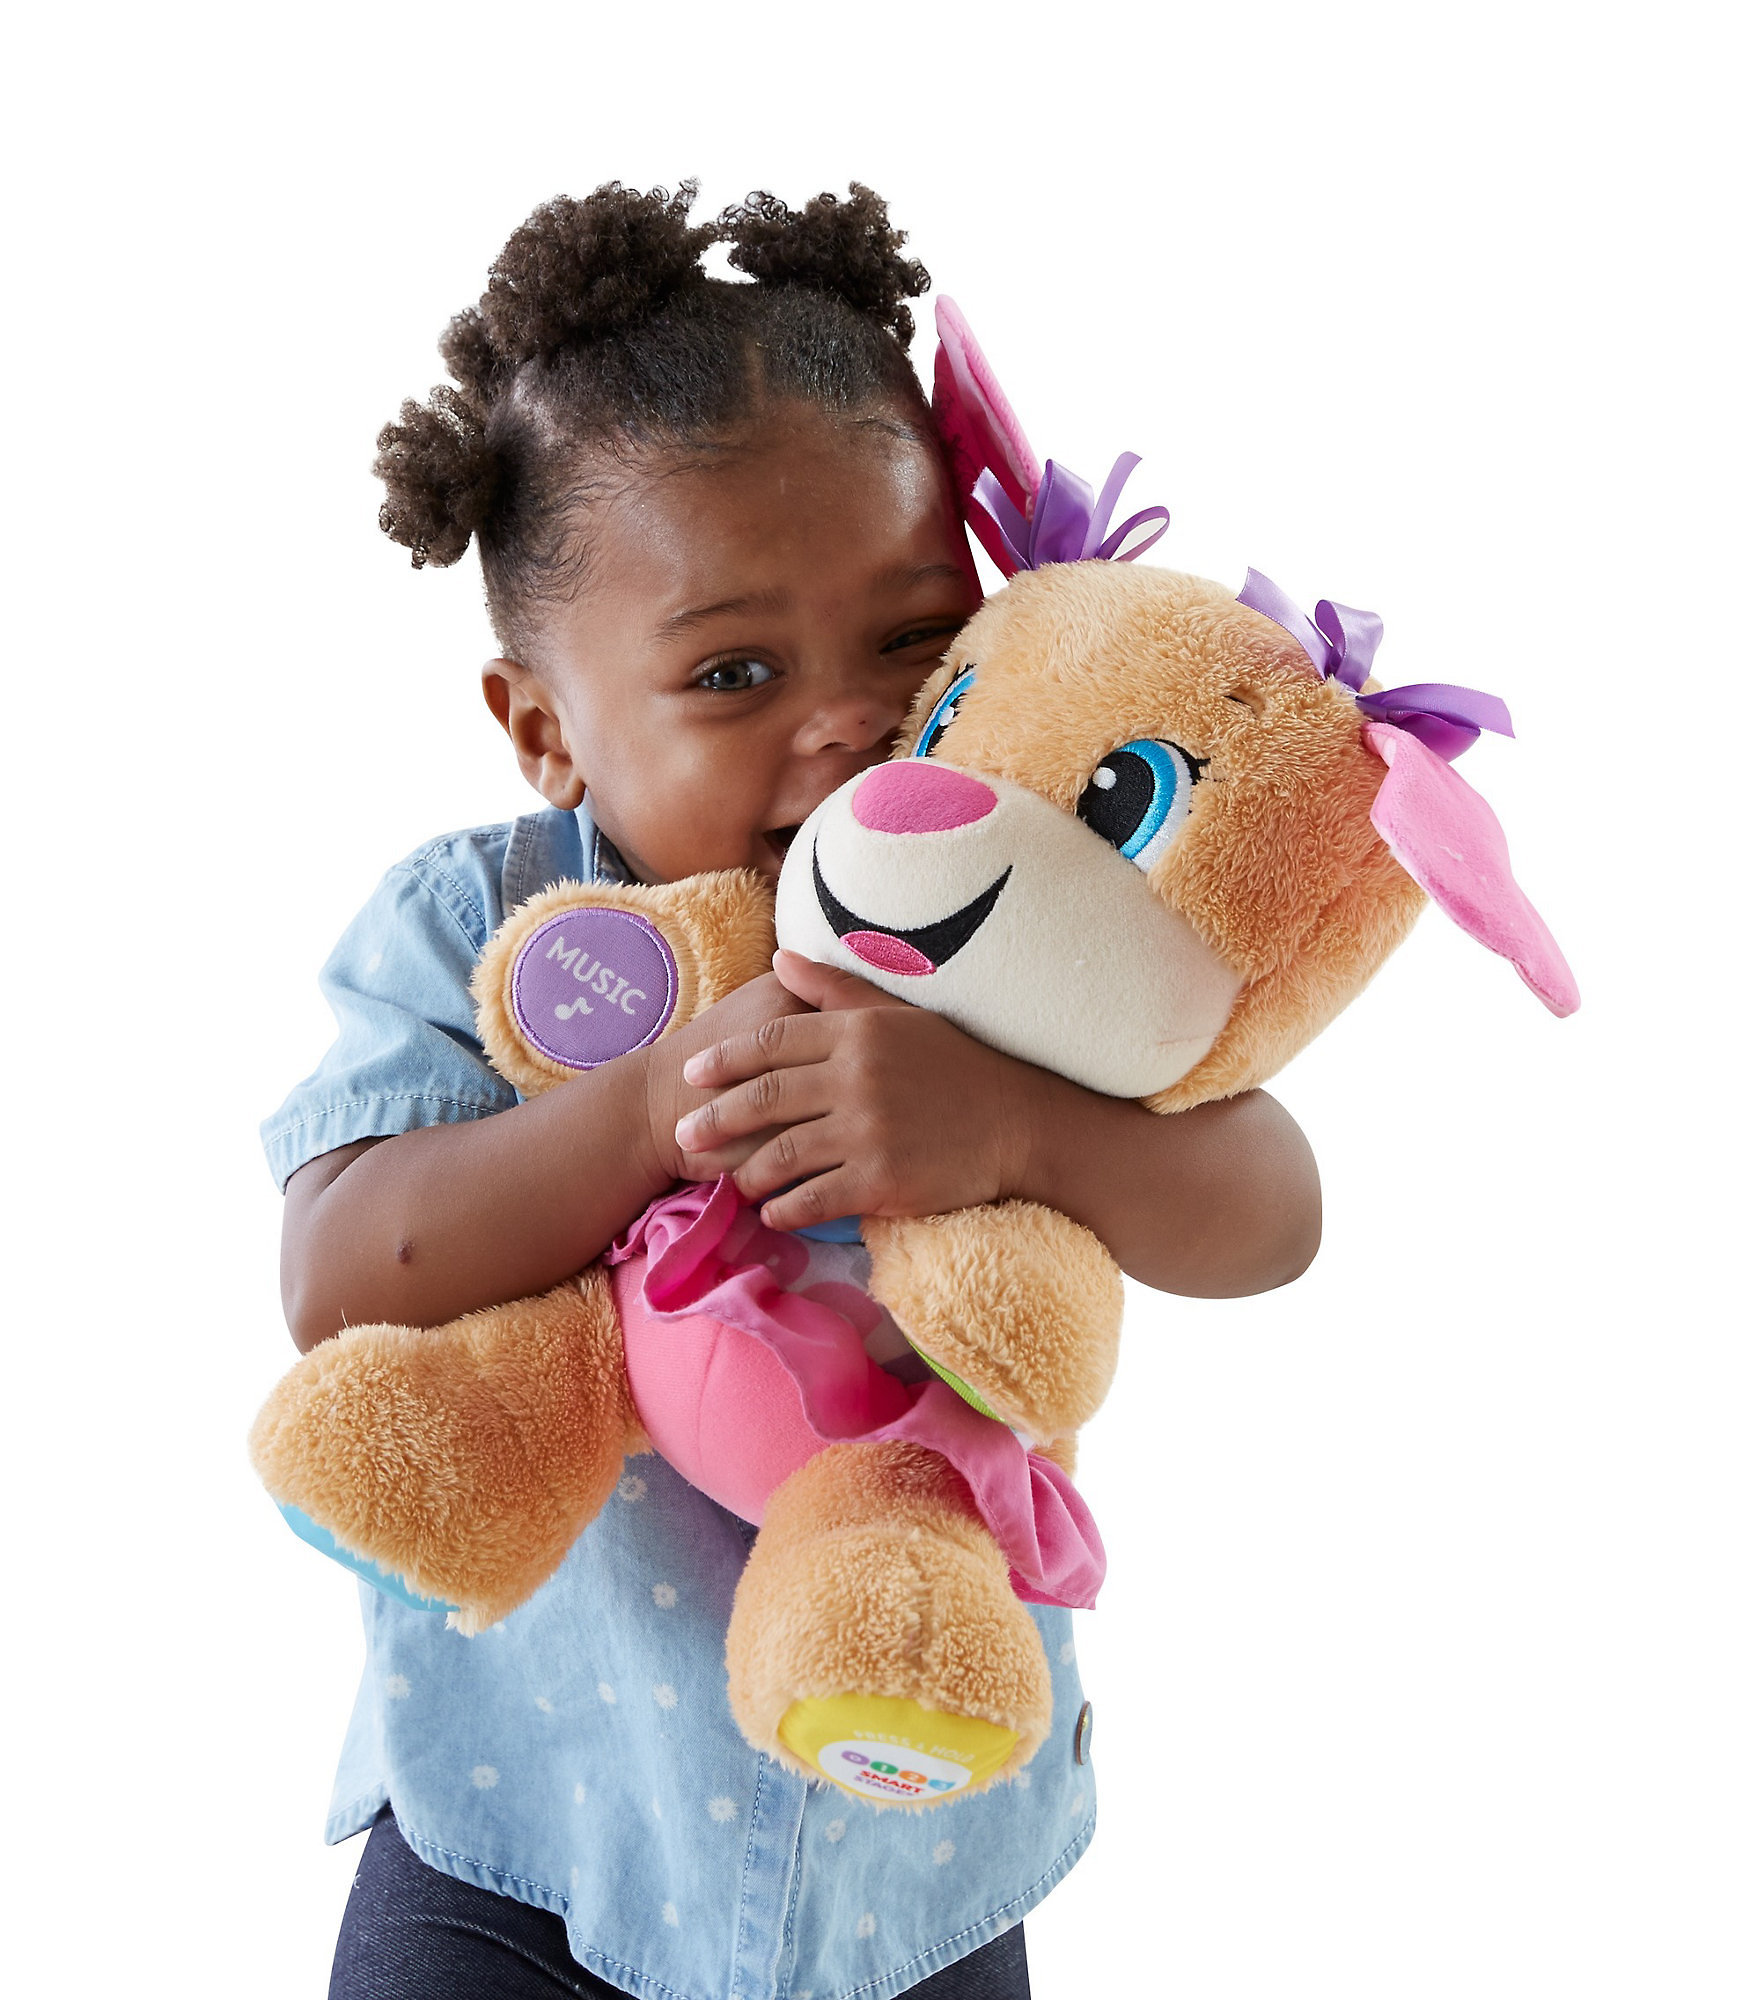 Fisher Price Laugh & Learn Smart Stages Sis by Fisher-Price